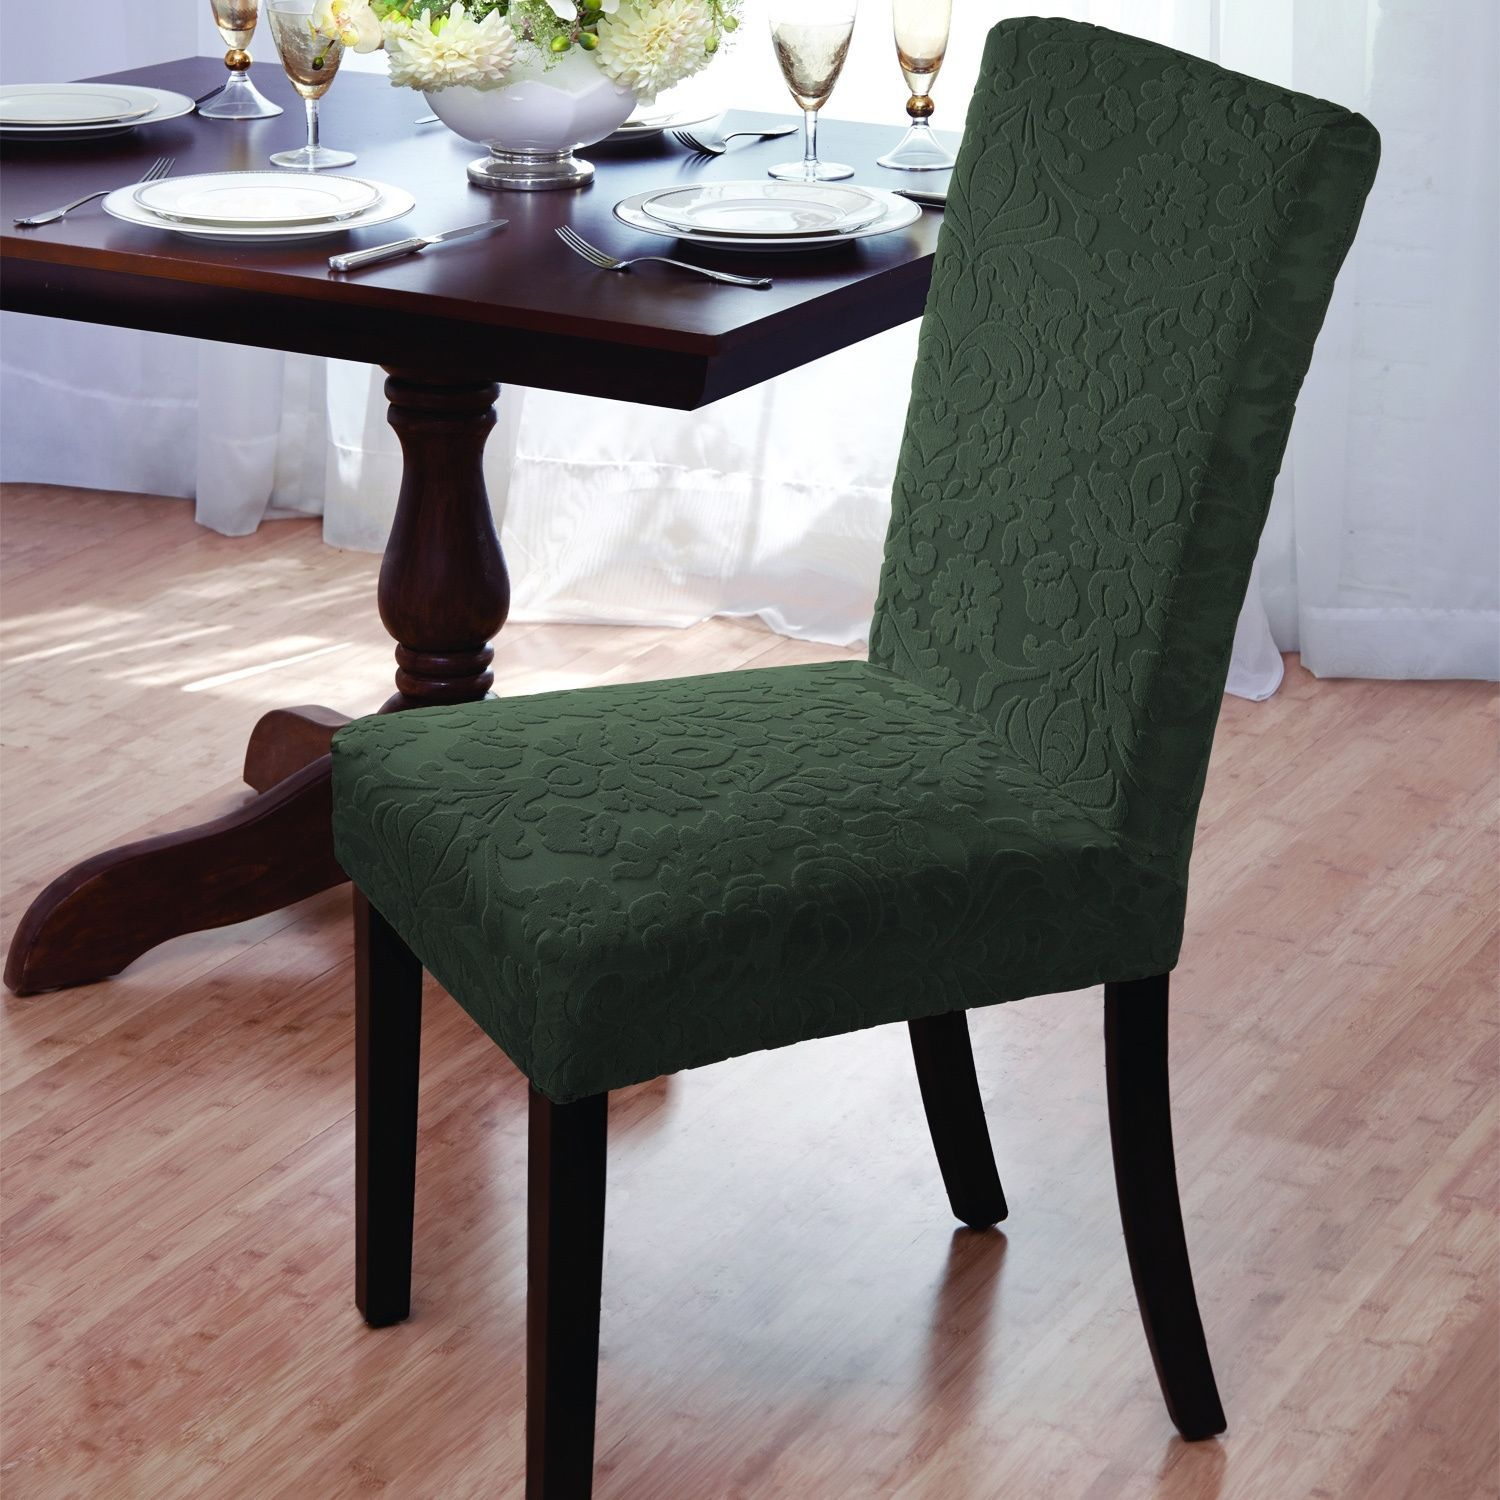 Madison Velvet Damask Stretch Dining Chair Slipcovers (Green) (Geometric)